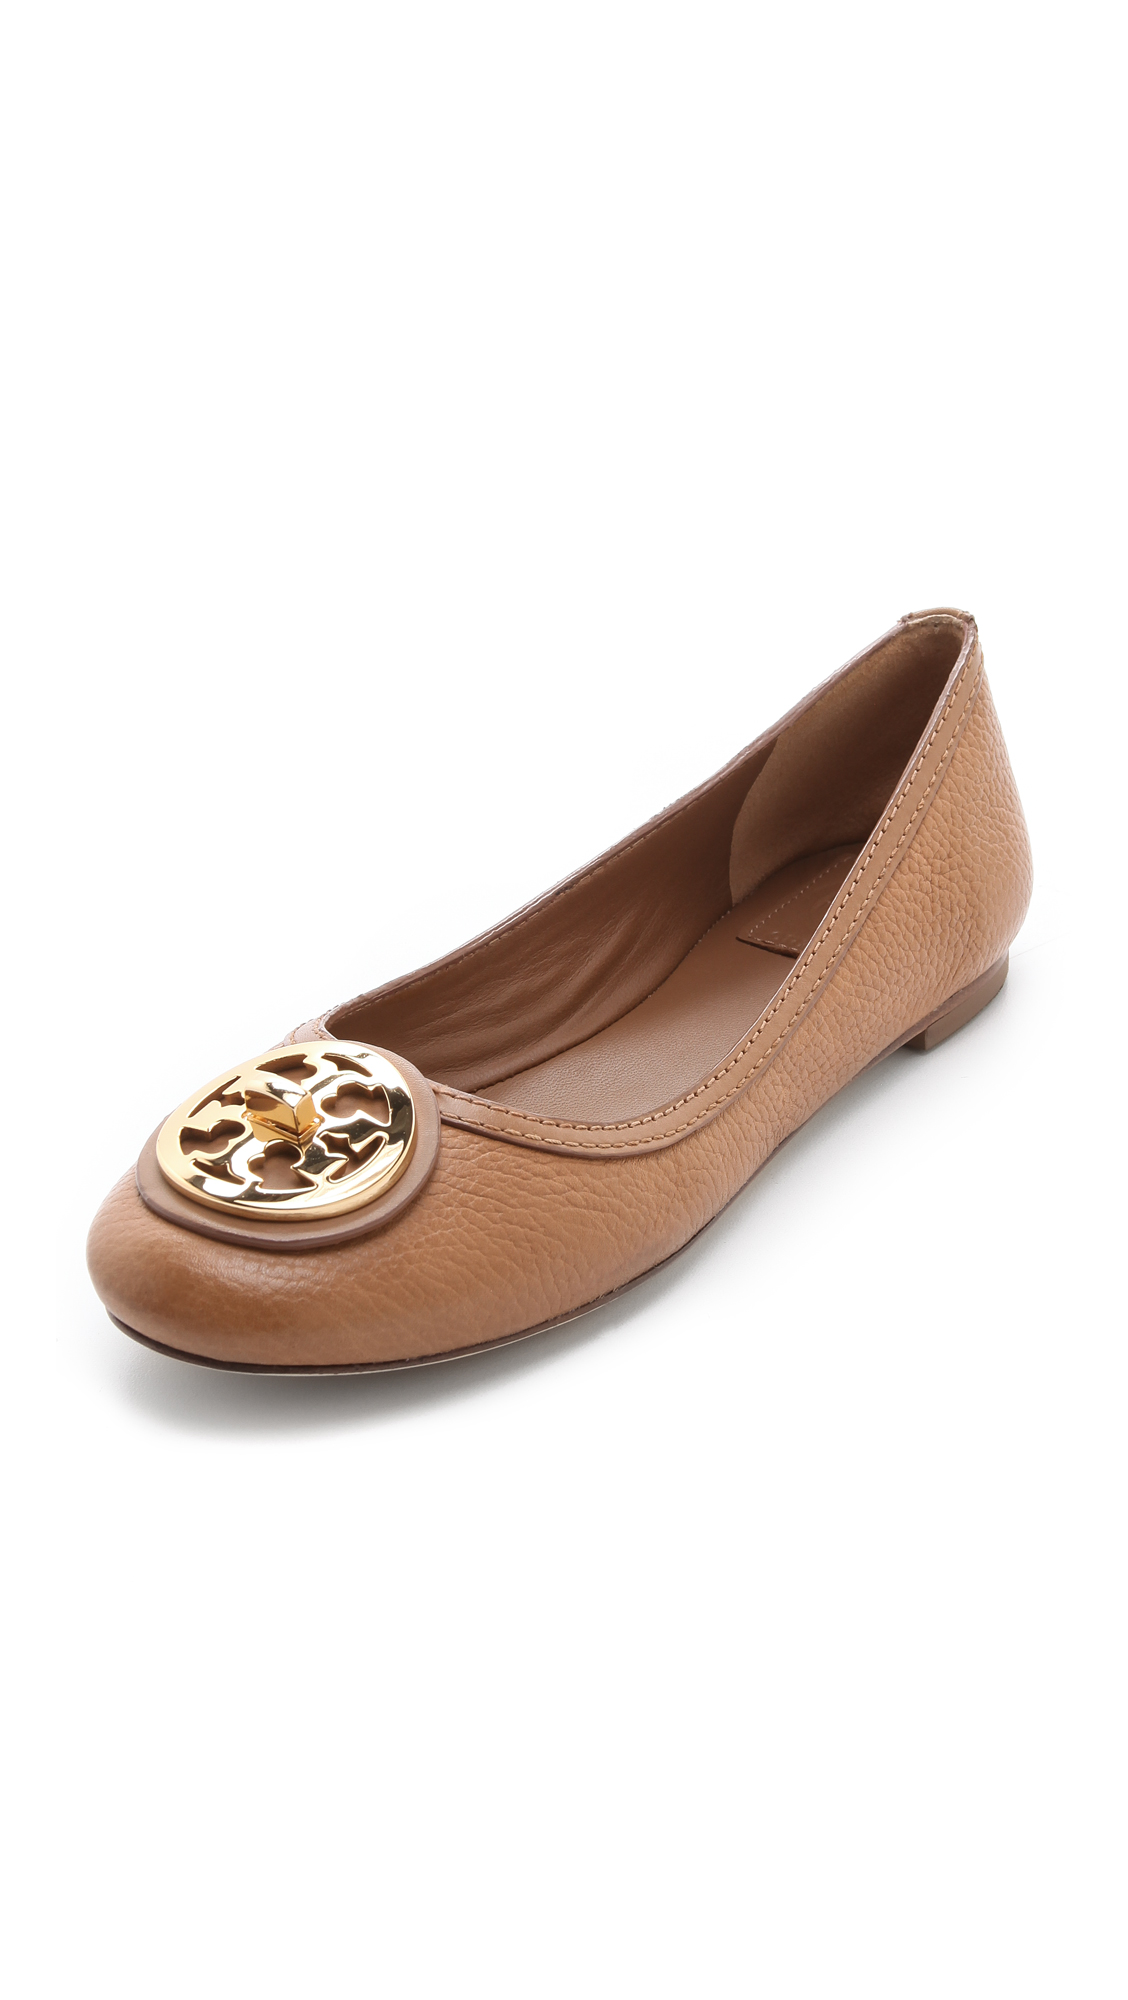 c5188900d53 Lyst - Tory Burch Selma Ballet Flats in Brown